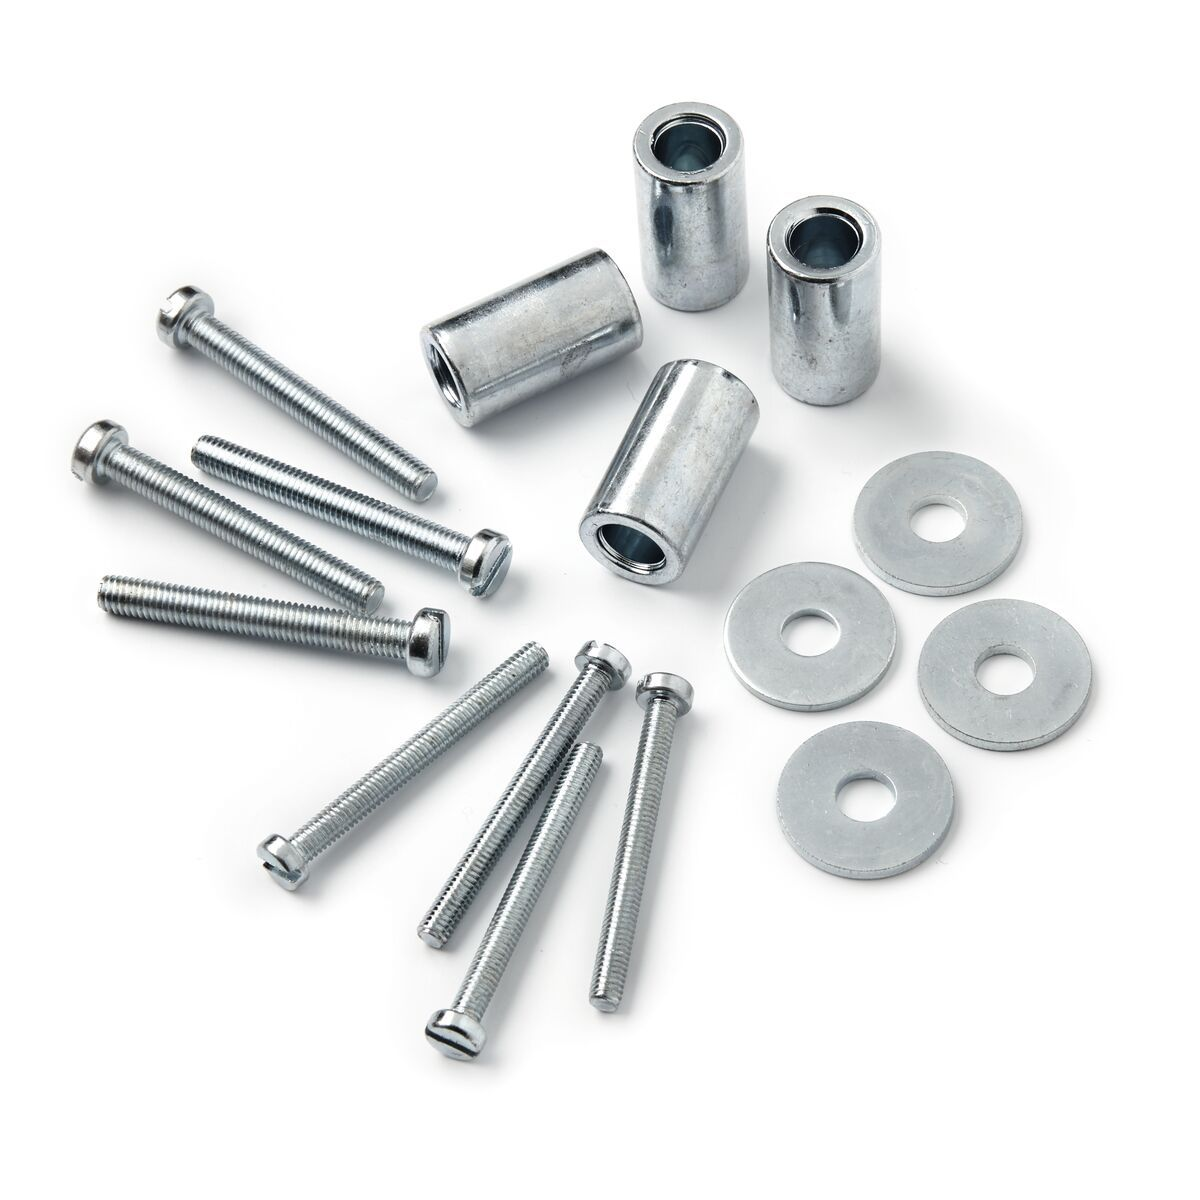 Vogel's Service Kit - Spacers (25 mm), M4-M5 bolts (40 mm) - Detail